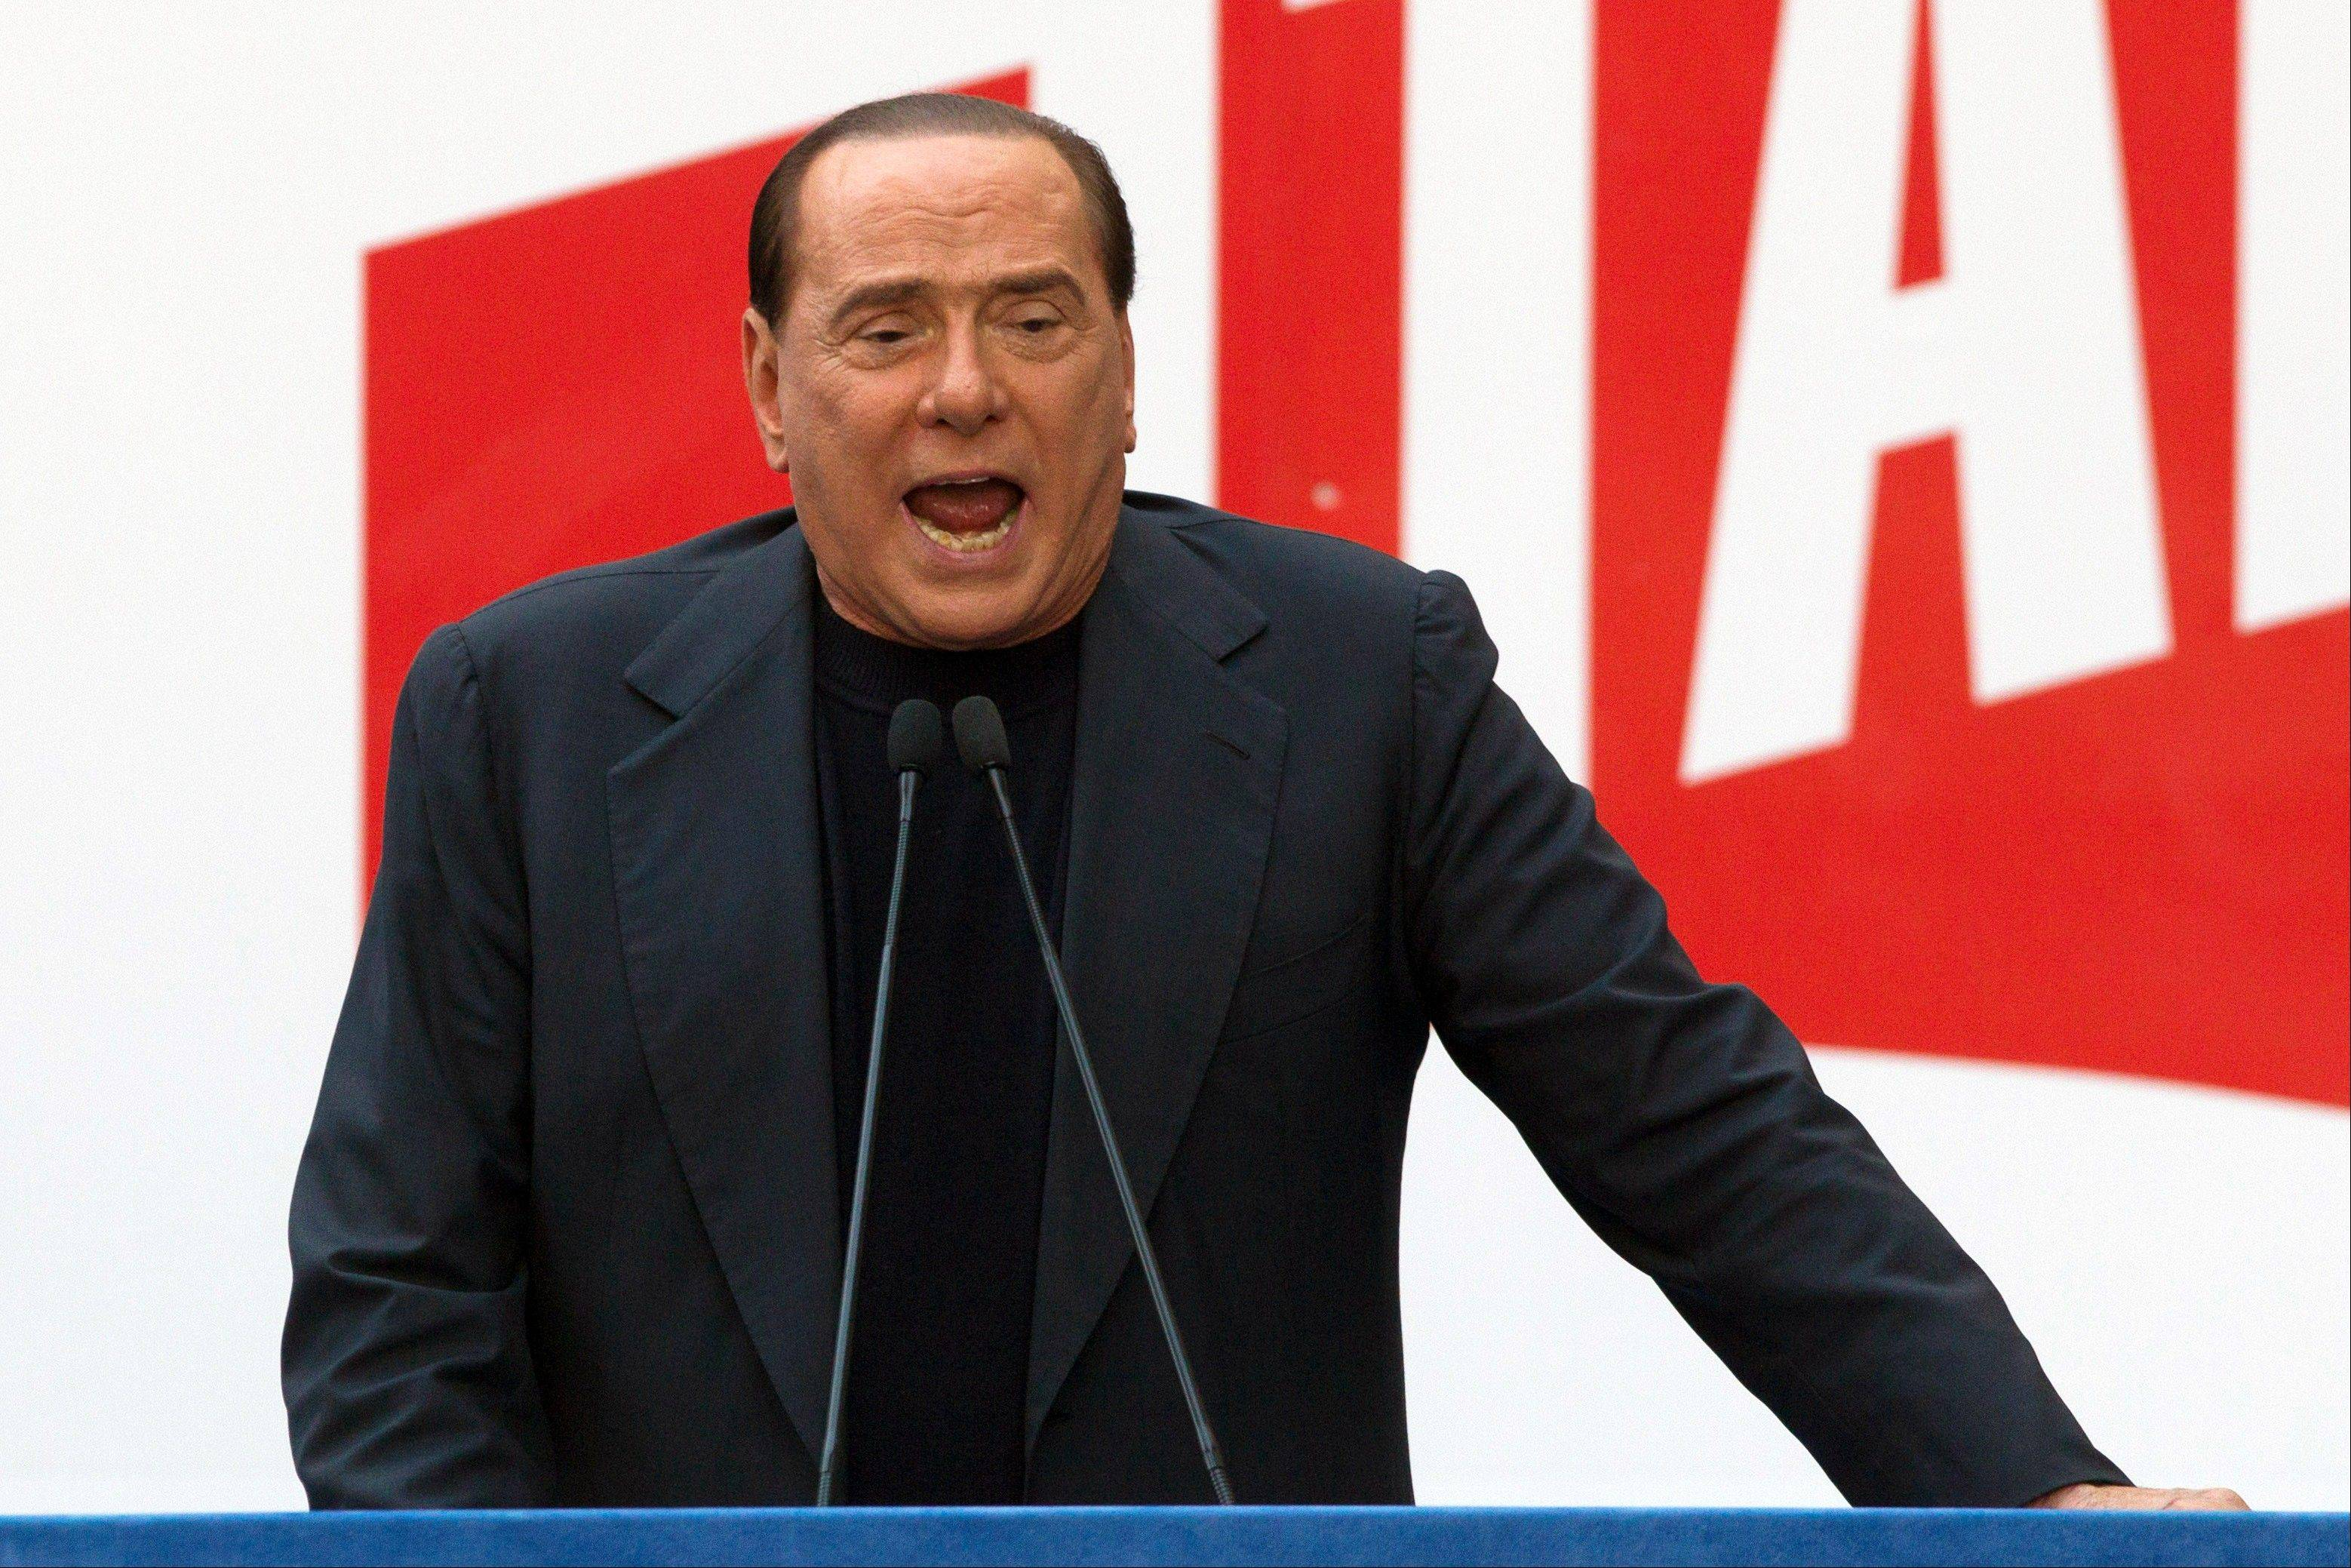 In this Sunday, Aug. 4, 2013 file photo, former Italian Premier Silvio Berlusconi addresses supporters during a demonstration in front of his residence in Rome. Government ministers in former Premier Silvio Berlusconi's political party have announced Saturday their intention to resign their posts, a move that raises tension in the uneasy coalition government and increases the possibility of early elections. Vice Premier Angelino Alfano's spokeswoman said Saturday the five ministers from Berlusconi's center-right People of Freedom Party have decided to submit their resignations.